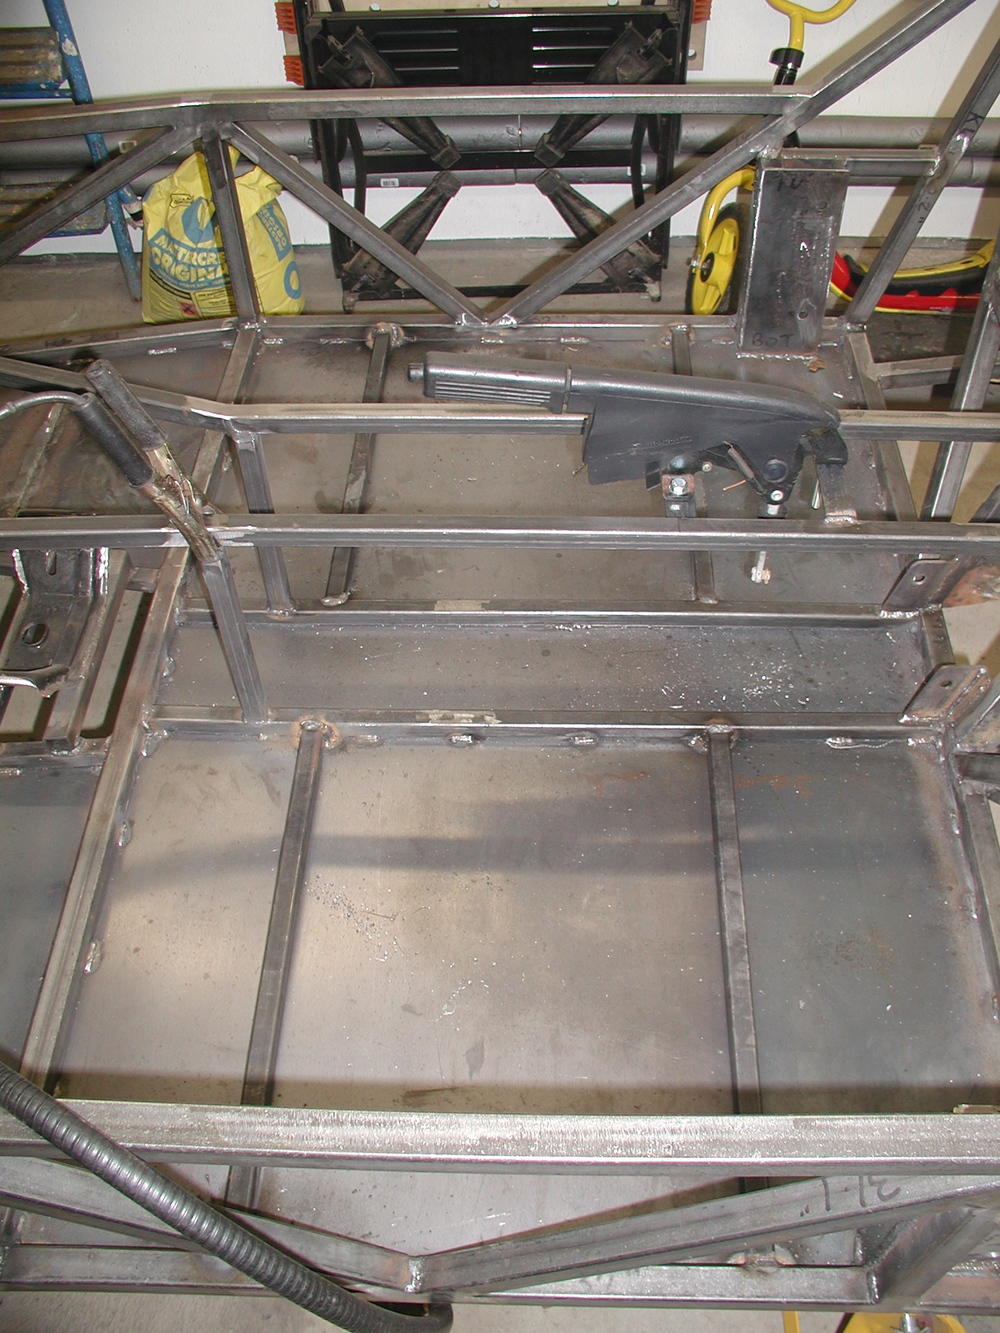 Item 7 from the list - Seat mounting braces welded in place